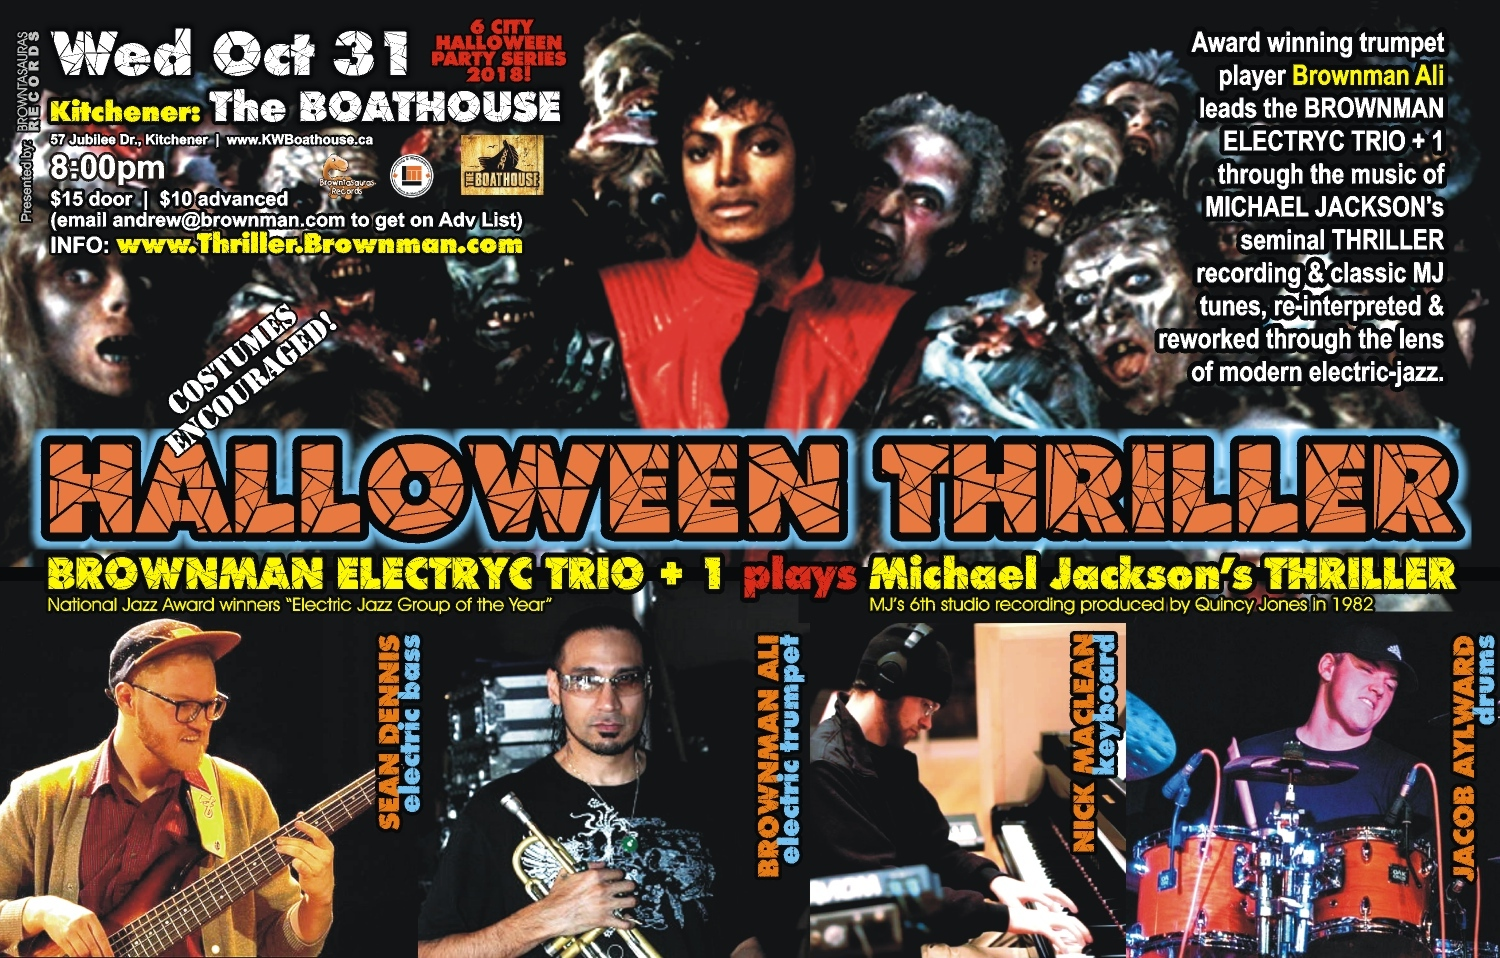 BROWNMAN'S Halloween Thriller (kitchener) - Michael Jackson As Electric-jazz